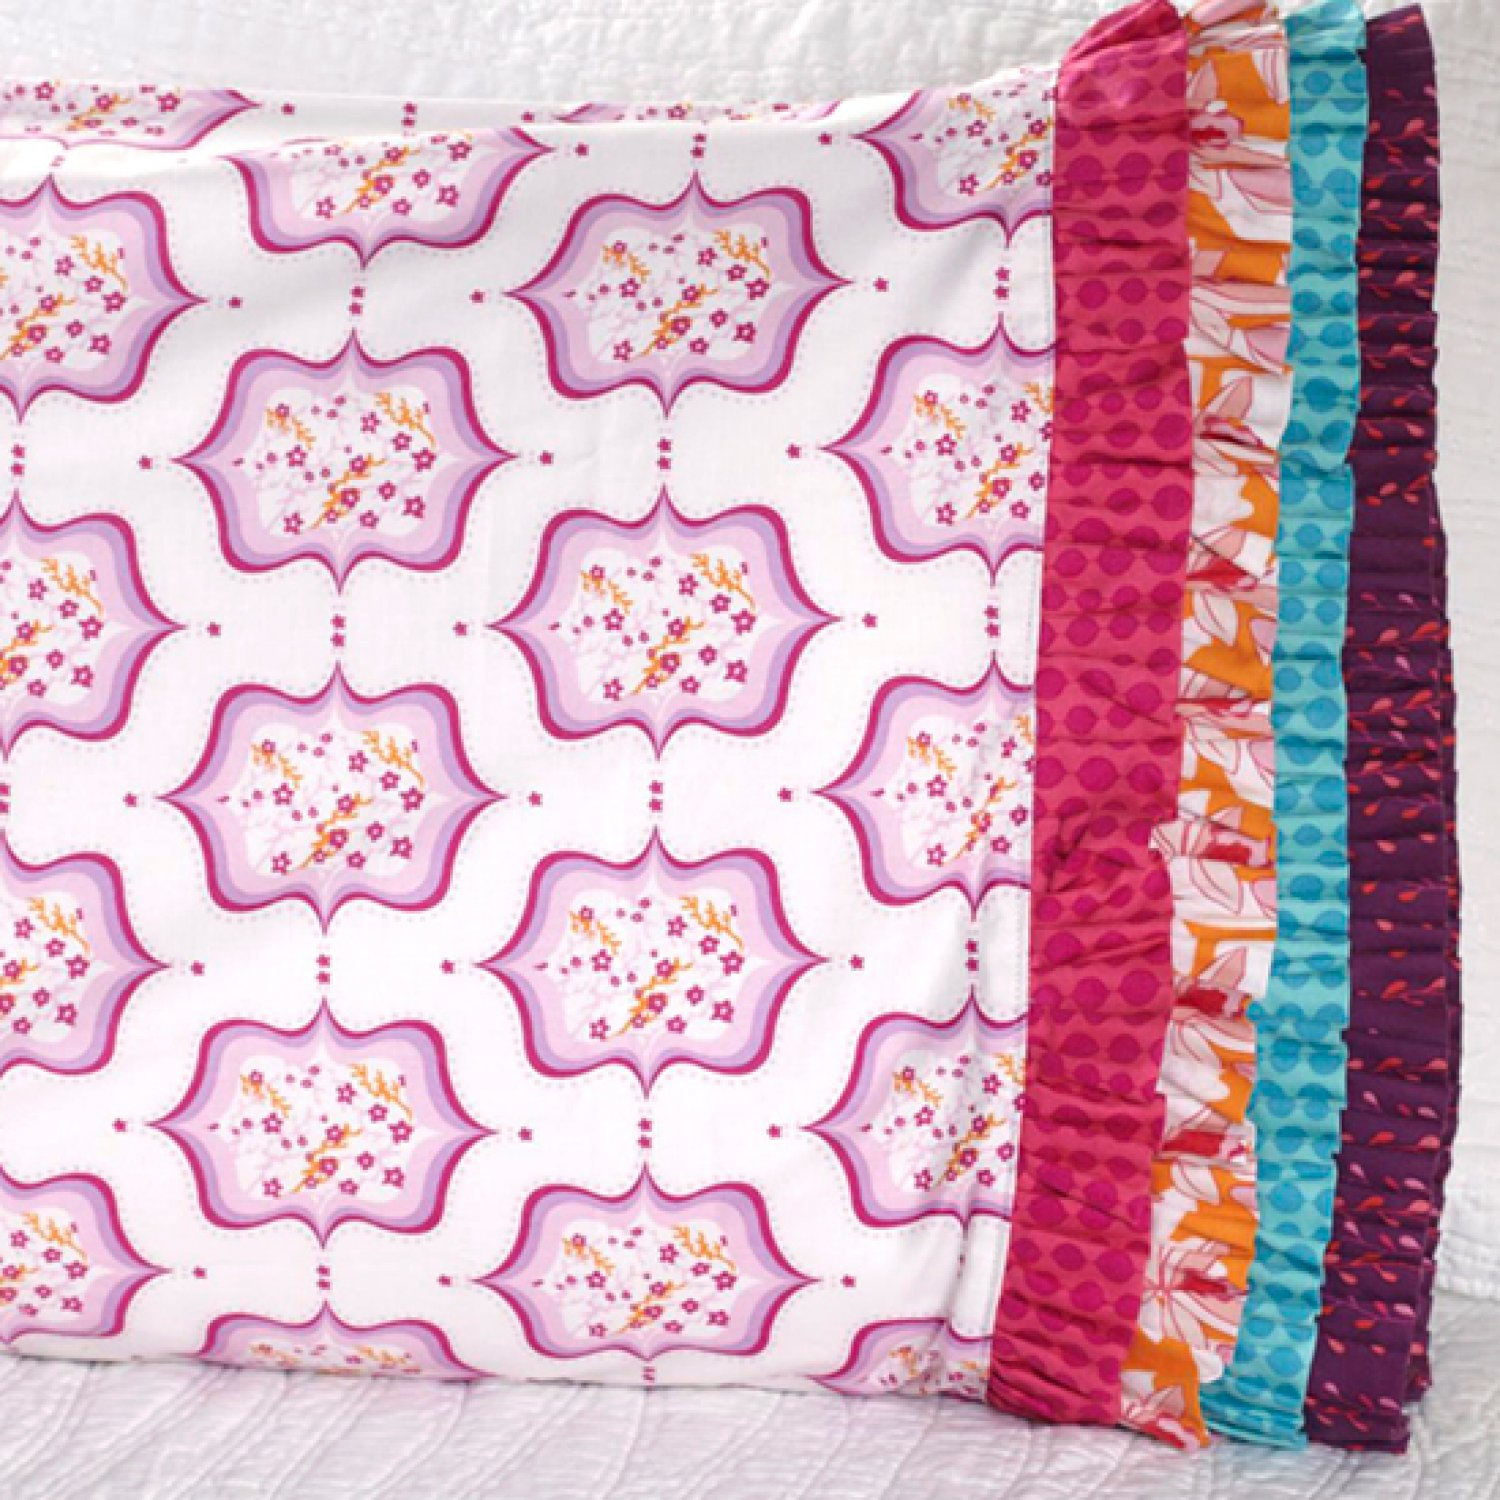 4th Quarter 2013 One Million Pillowcase Featured Fabrics ... : all people quilt pillowcase - Adamdwight.com